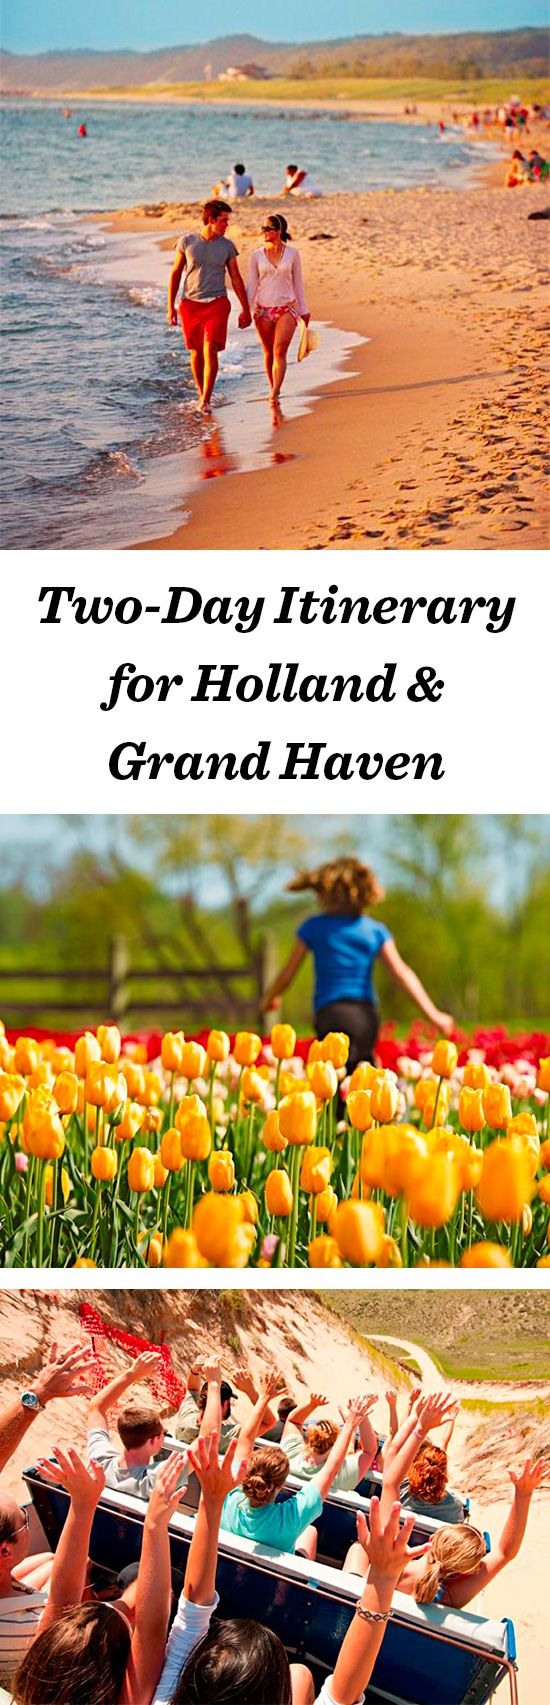 The Lake Michigan shore towns west of Grand Rapids—Holland, Grand Haven and Muskegon—offer a mix of Dutch heritage, impressive gardens and pretty boardwalks: http://www.midwestliving.com/travel/michigan/holland/two-day-itinerary-for-holland-grand-haven-and-muskegon/ #michigan #lakemichigan #vacation